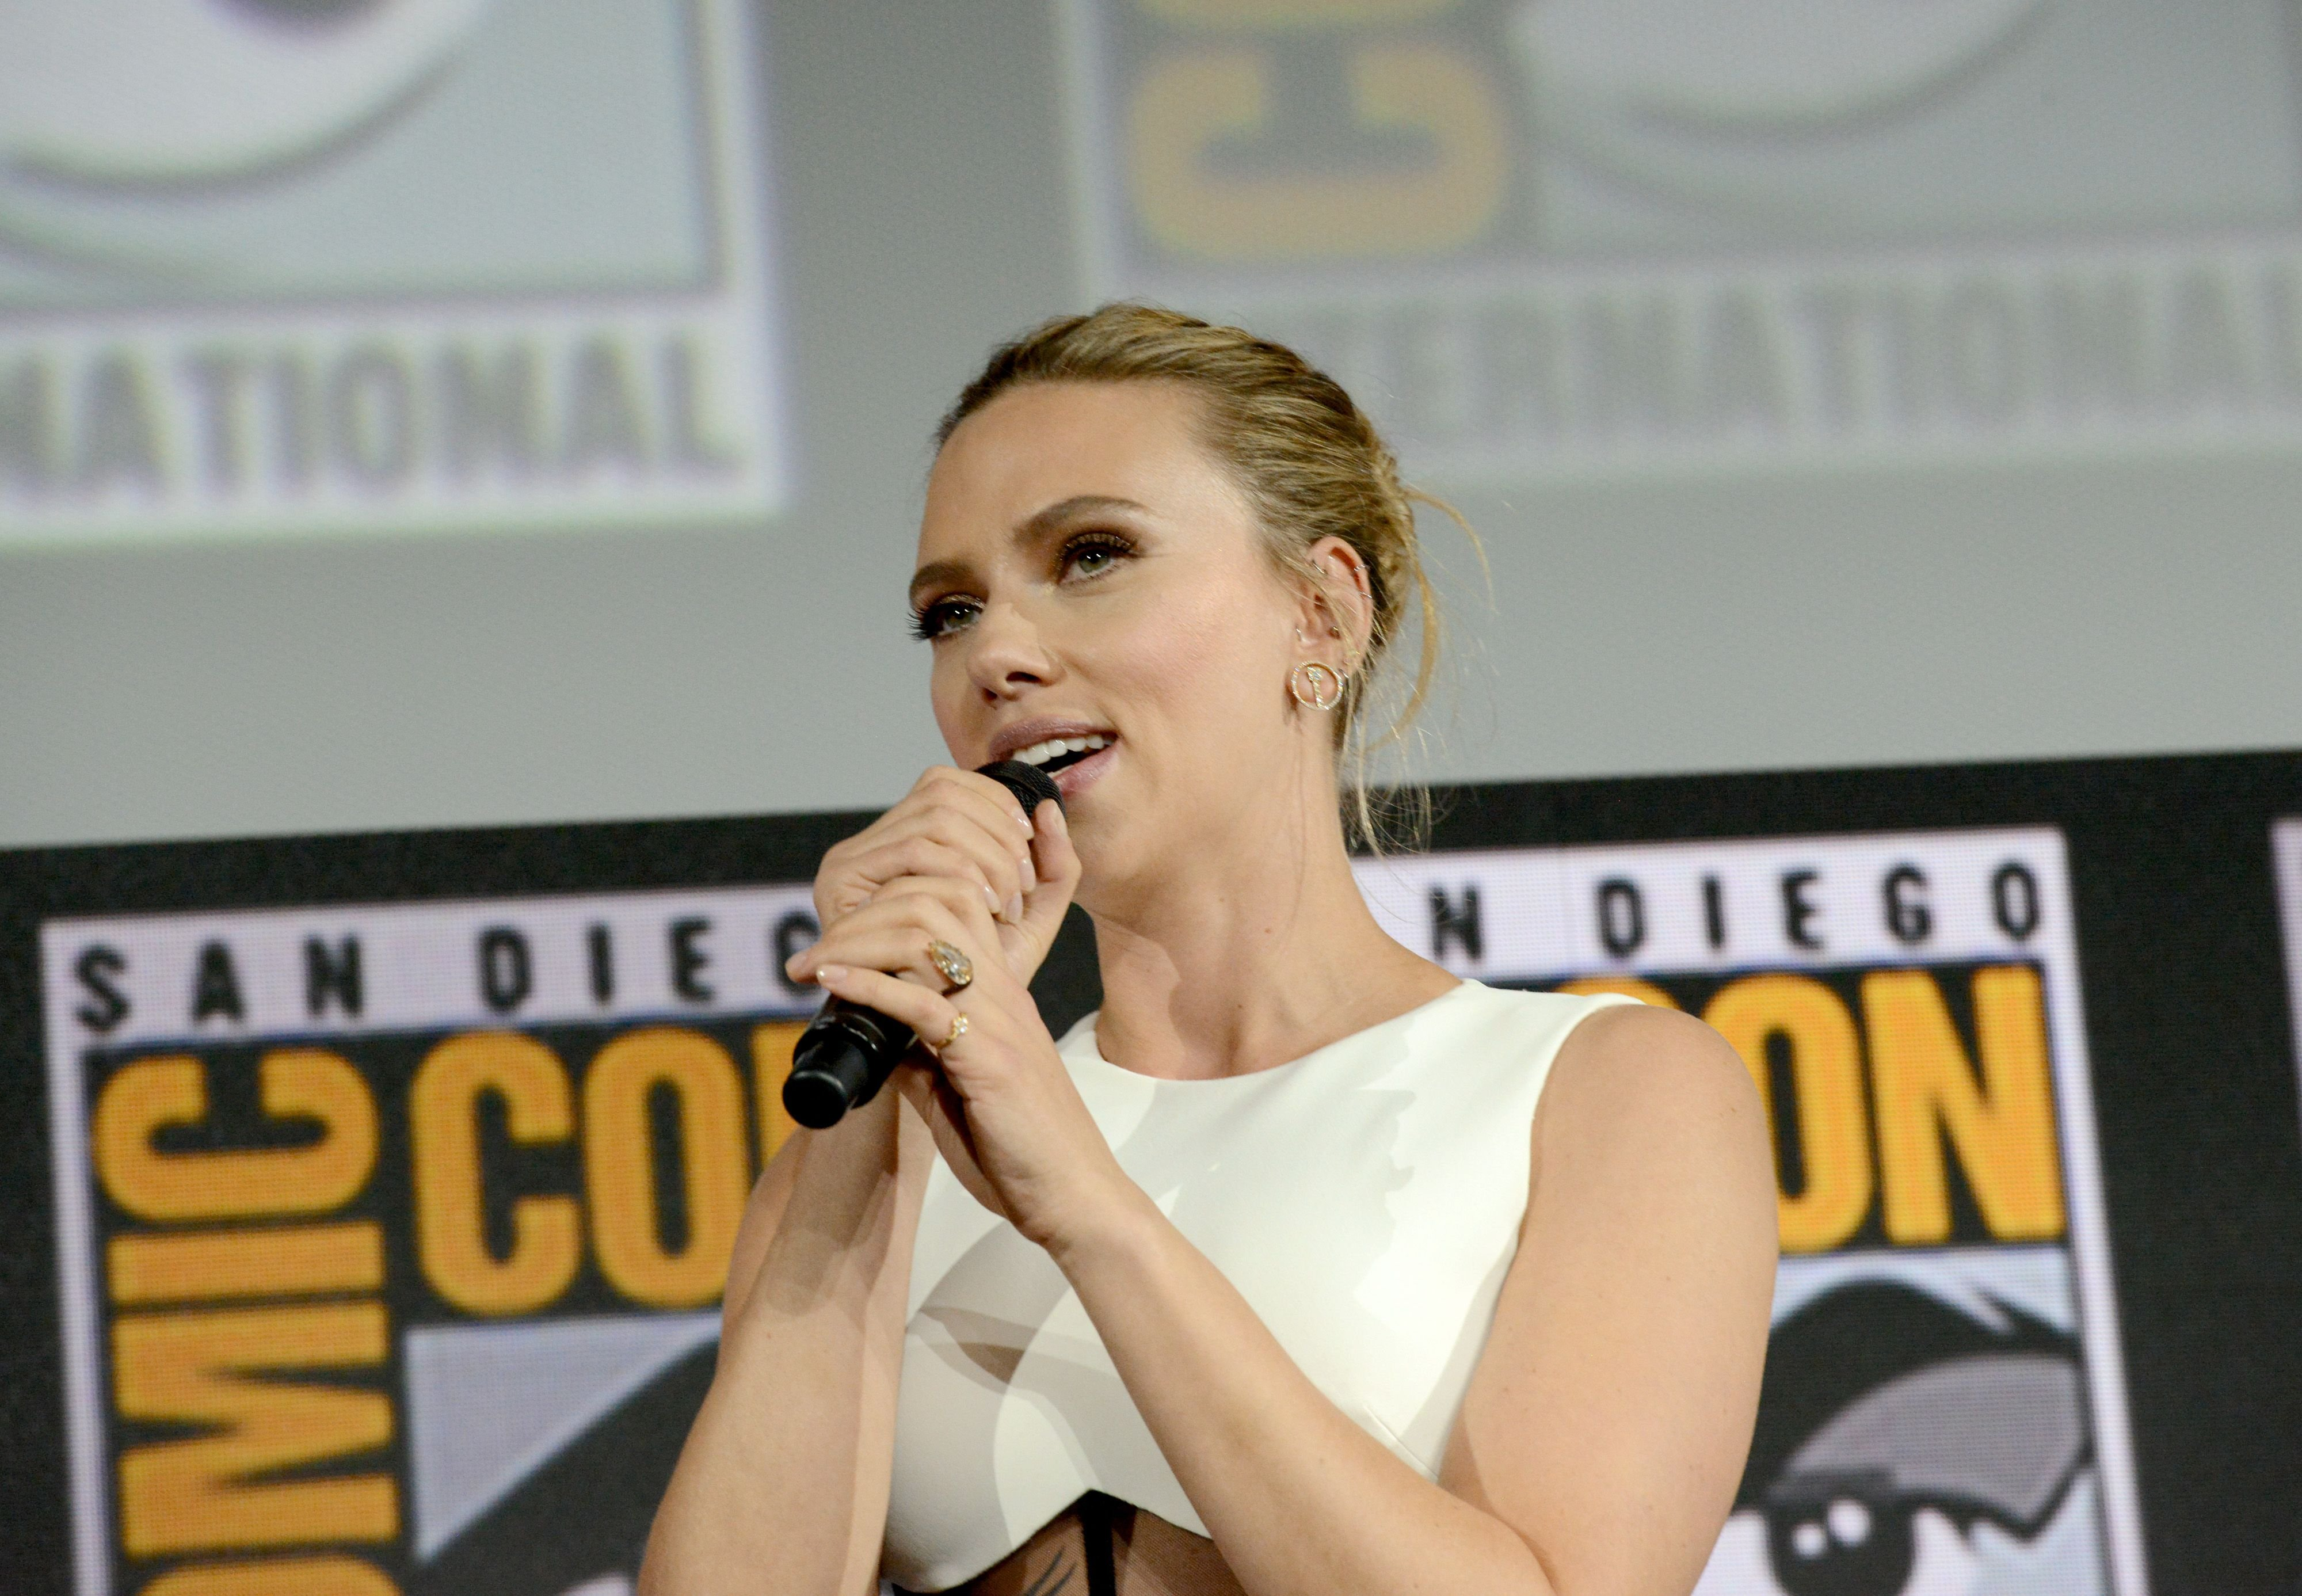 Scarlett Johansson spoke at the Marvel Studios Panel at 2019 Comic-Con International at San Diego Convention Center on July 20, 2019 | Photo: Getty Images